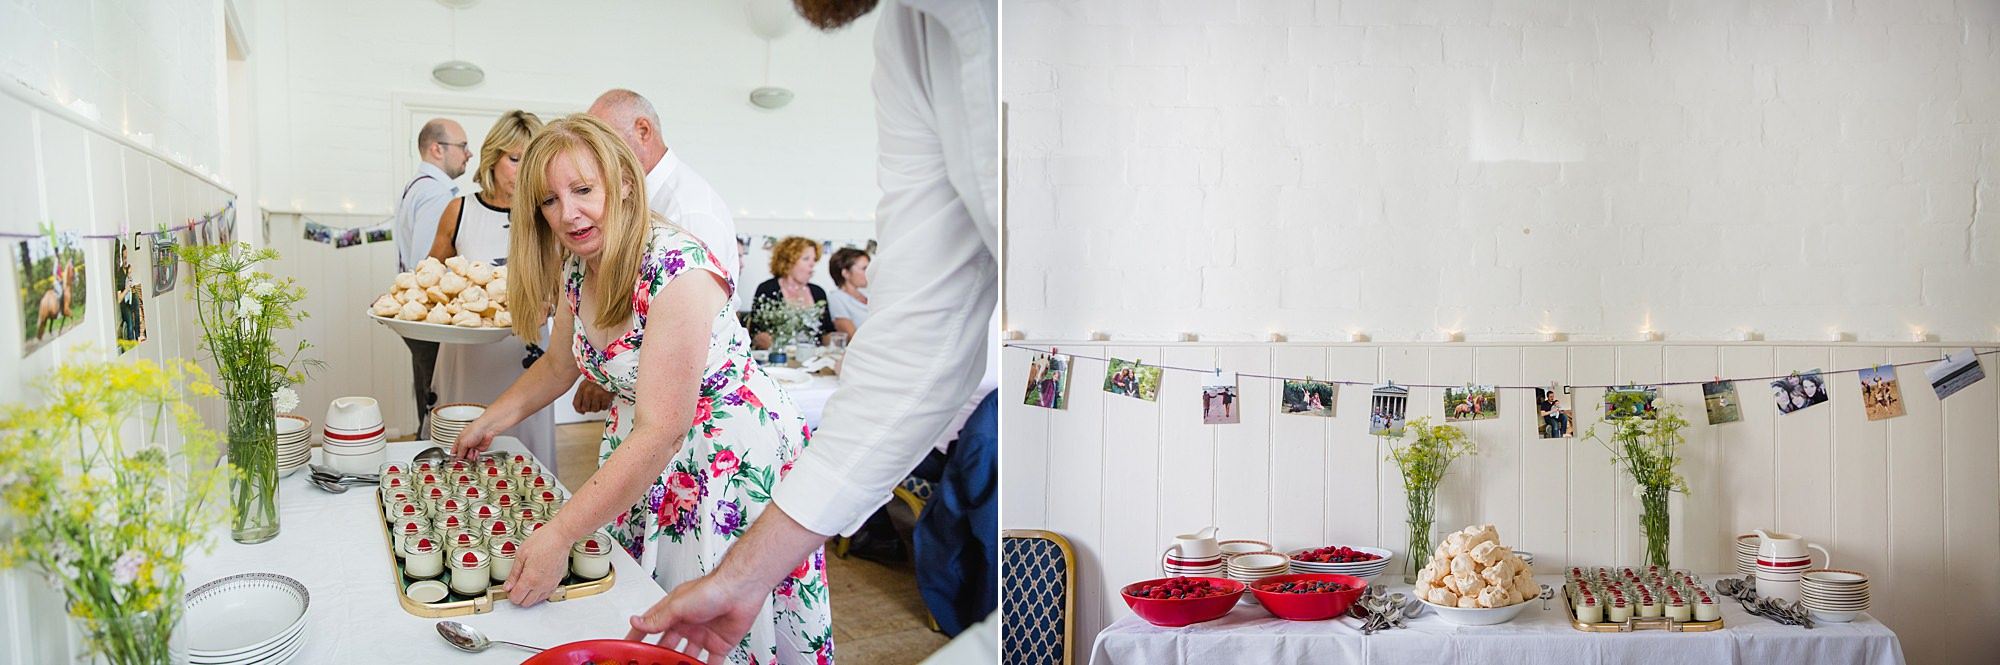 Fun village hall wedding guests putting out home made dessert